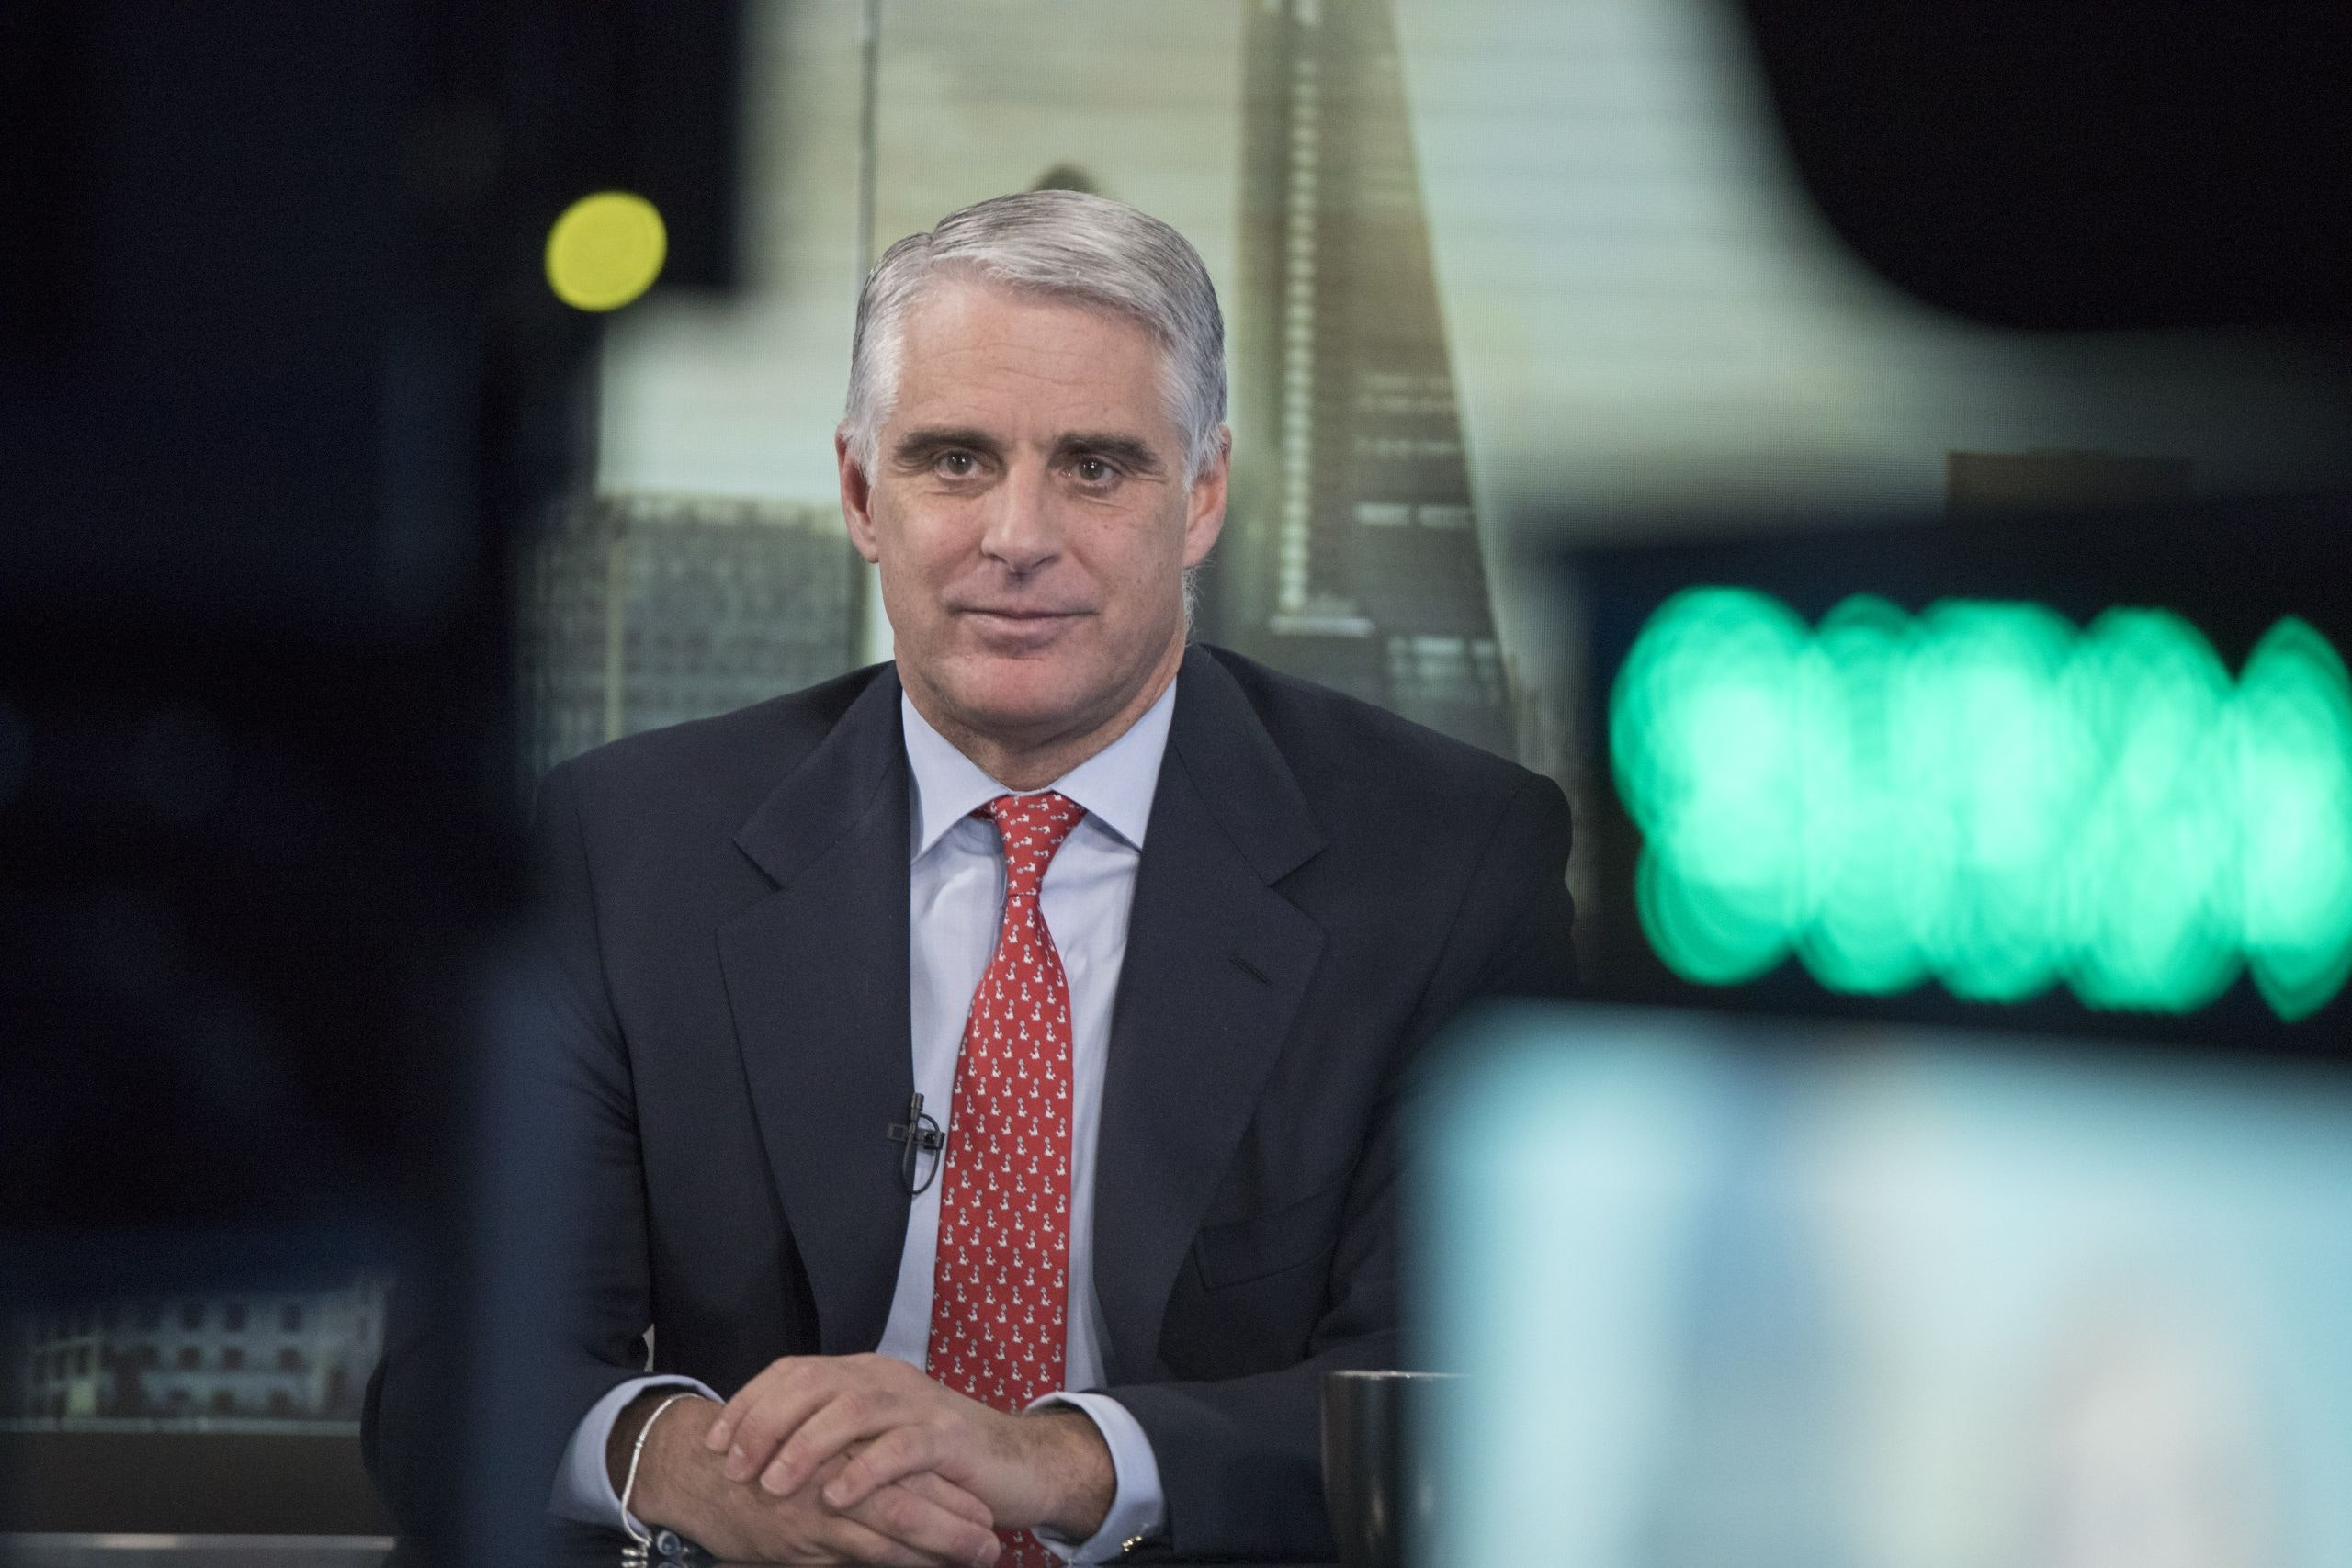 Andrea Orcel, investment bank president of UBS Group AG, pauses during a Bloomberg Television interview in London, U.K., on Friday, Dec. 8, 2017. Orcel, the head ofUBS Group AG's investment bank, said he expects 2018 to be another challenging year for securities firms as the low volatility that has eroded trading income and fees persist. Photographer: Jason Alden/Bloomberg